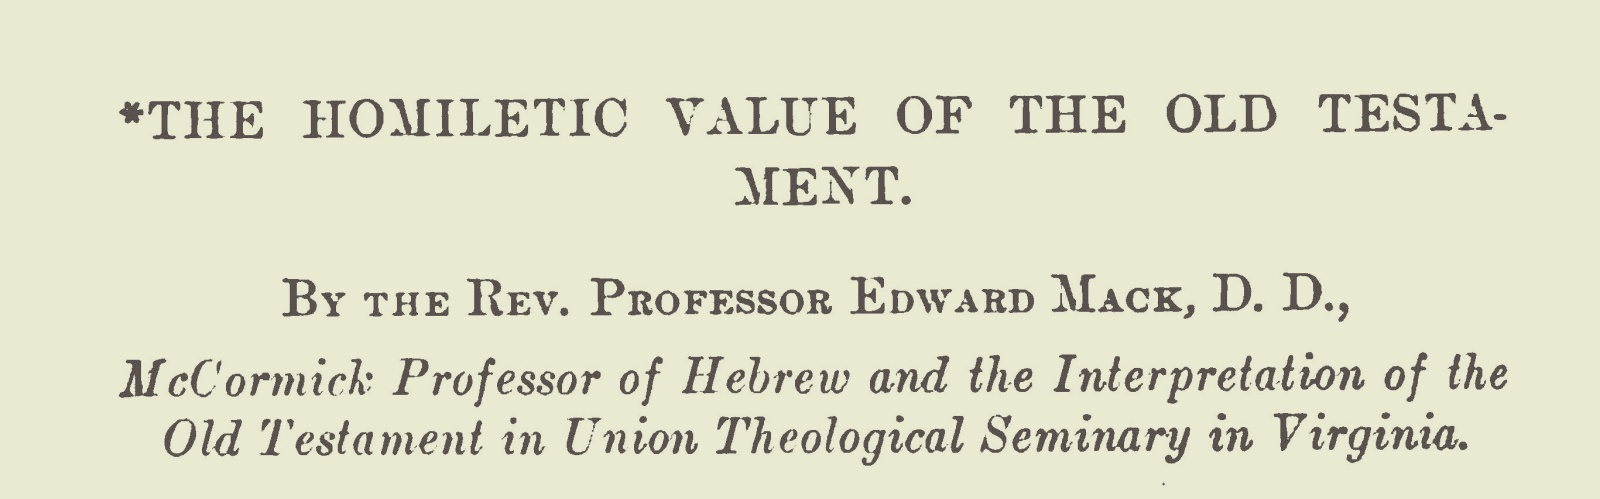 Mack, Sr., Edward, The Homiletic Value of the Old Testament Title Page.jpg